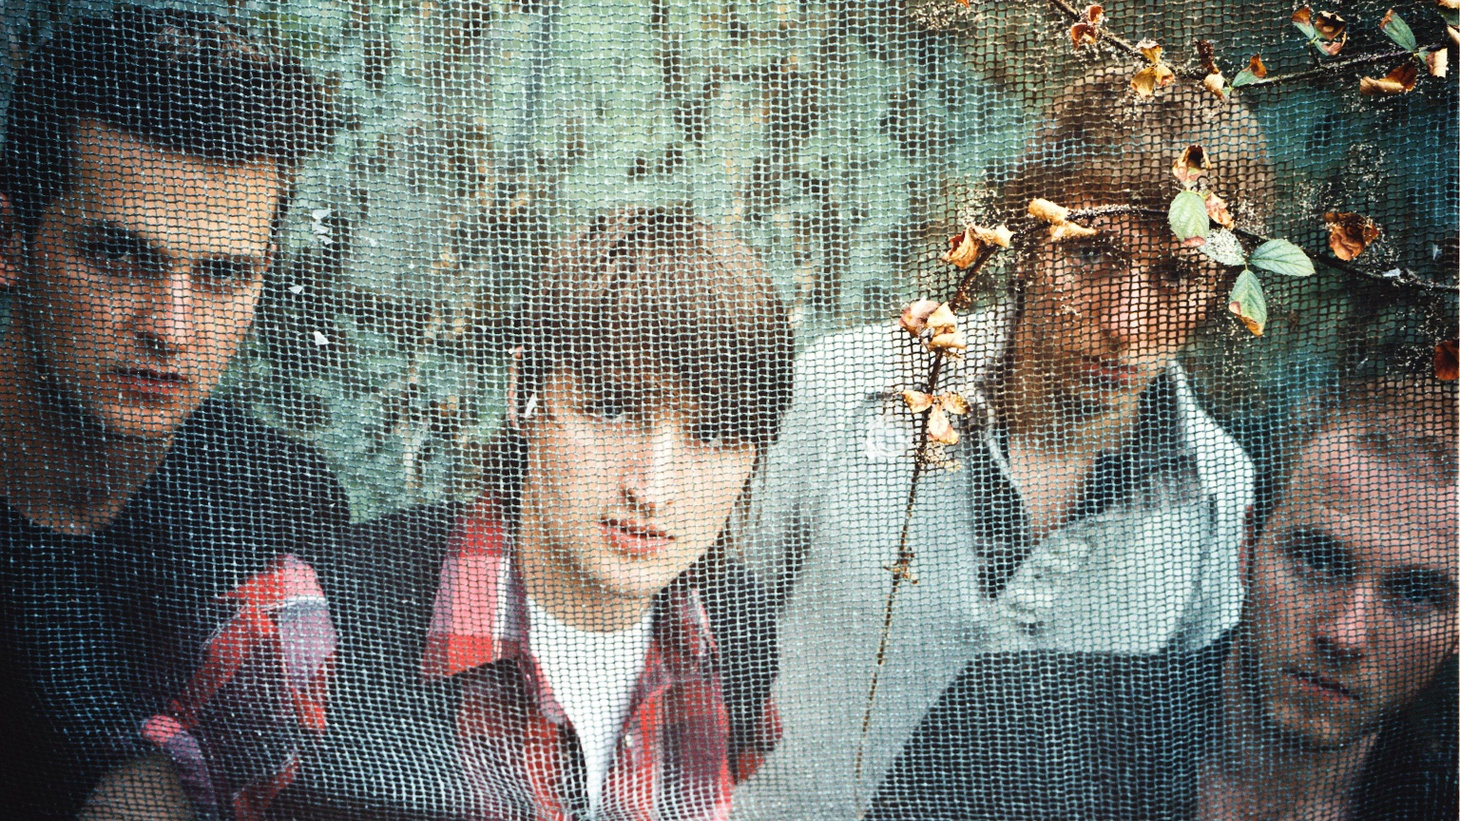 The soaring and ambitious music of Wild Beasts has been lauded by the BBC for its combination of theatrical falsettos and shimmering guitar work. We'll find ourselves tamed by the UK band's prowess when we are treated to a live session on Morning Becomes Eclectic at 11:15am.